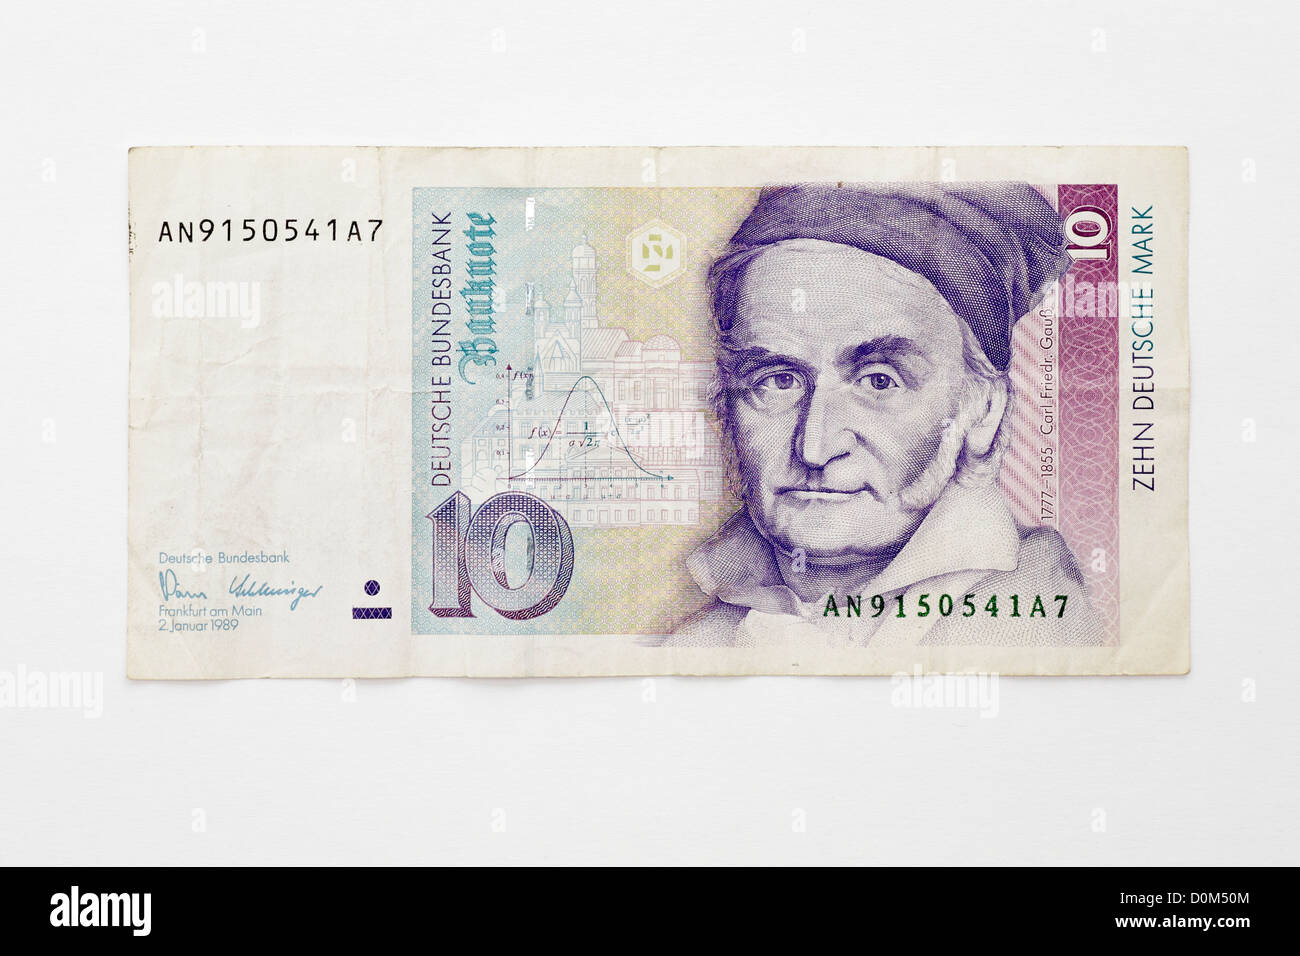 10 Deutsche Mark Banknote High Resolution Stock Photography And Images Alamy